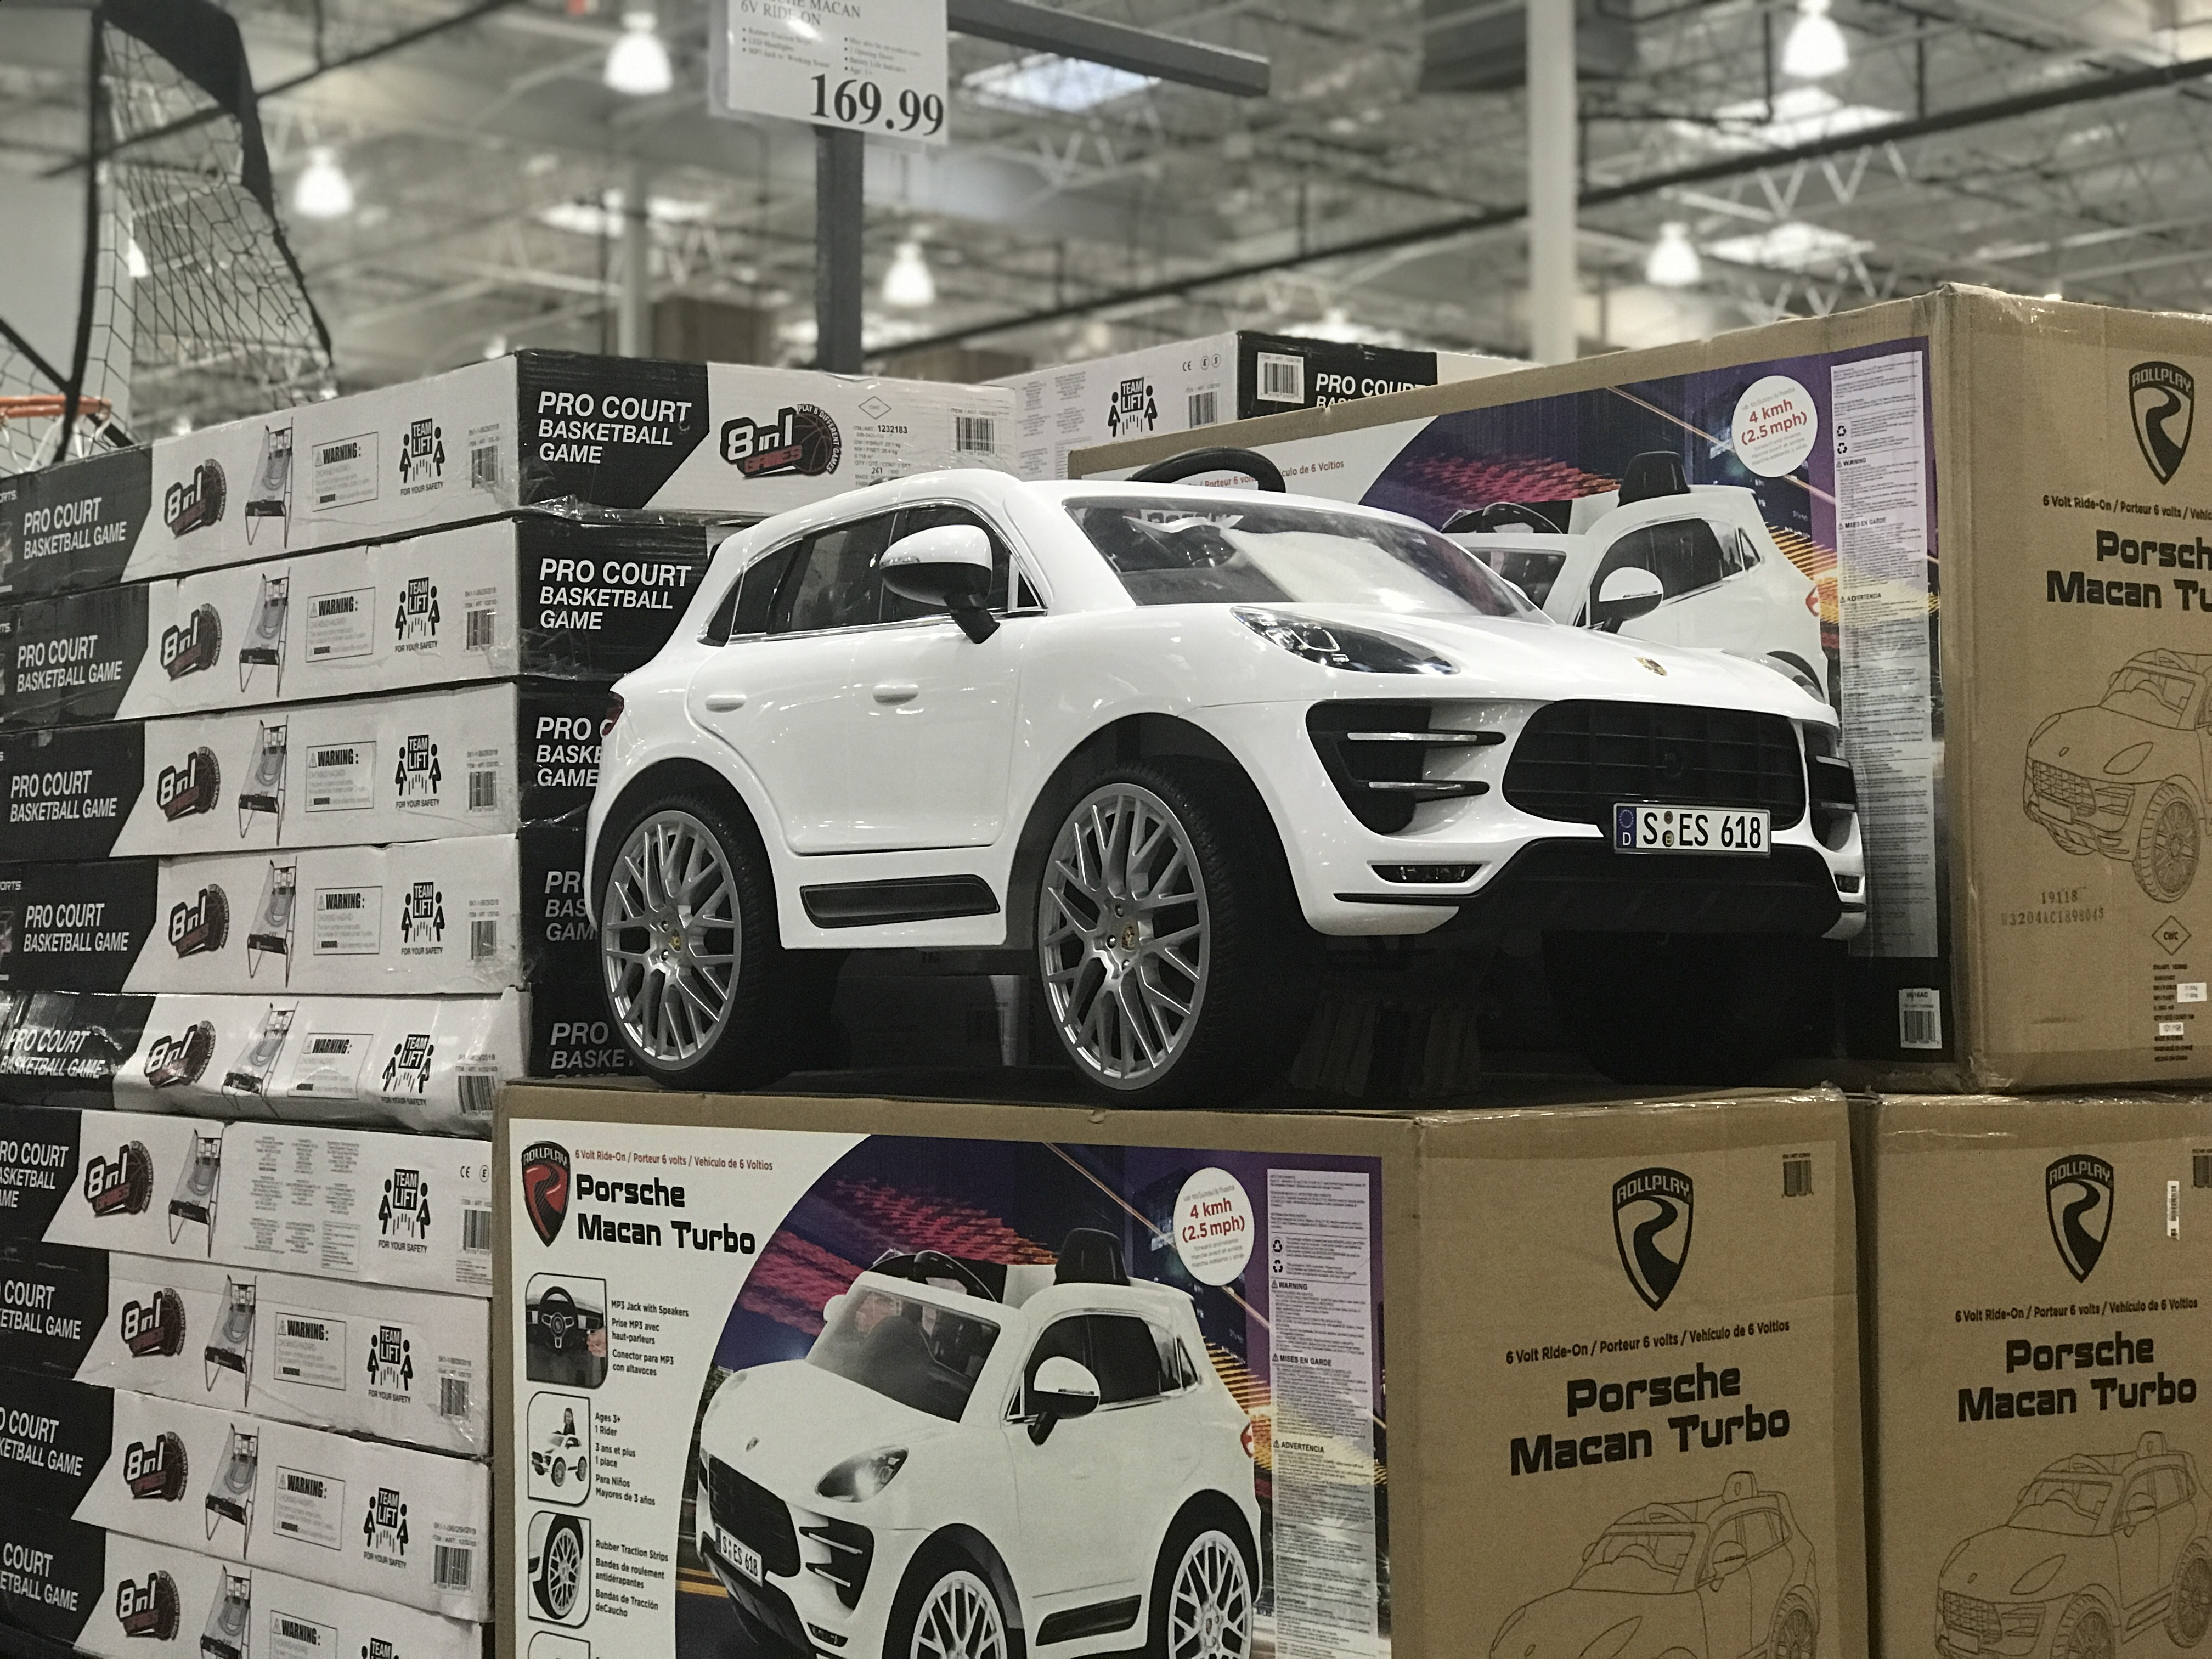 Top 51 Costco Holiday 2018 Toy Deals The Krazy Coupon Lady